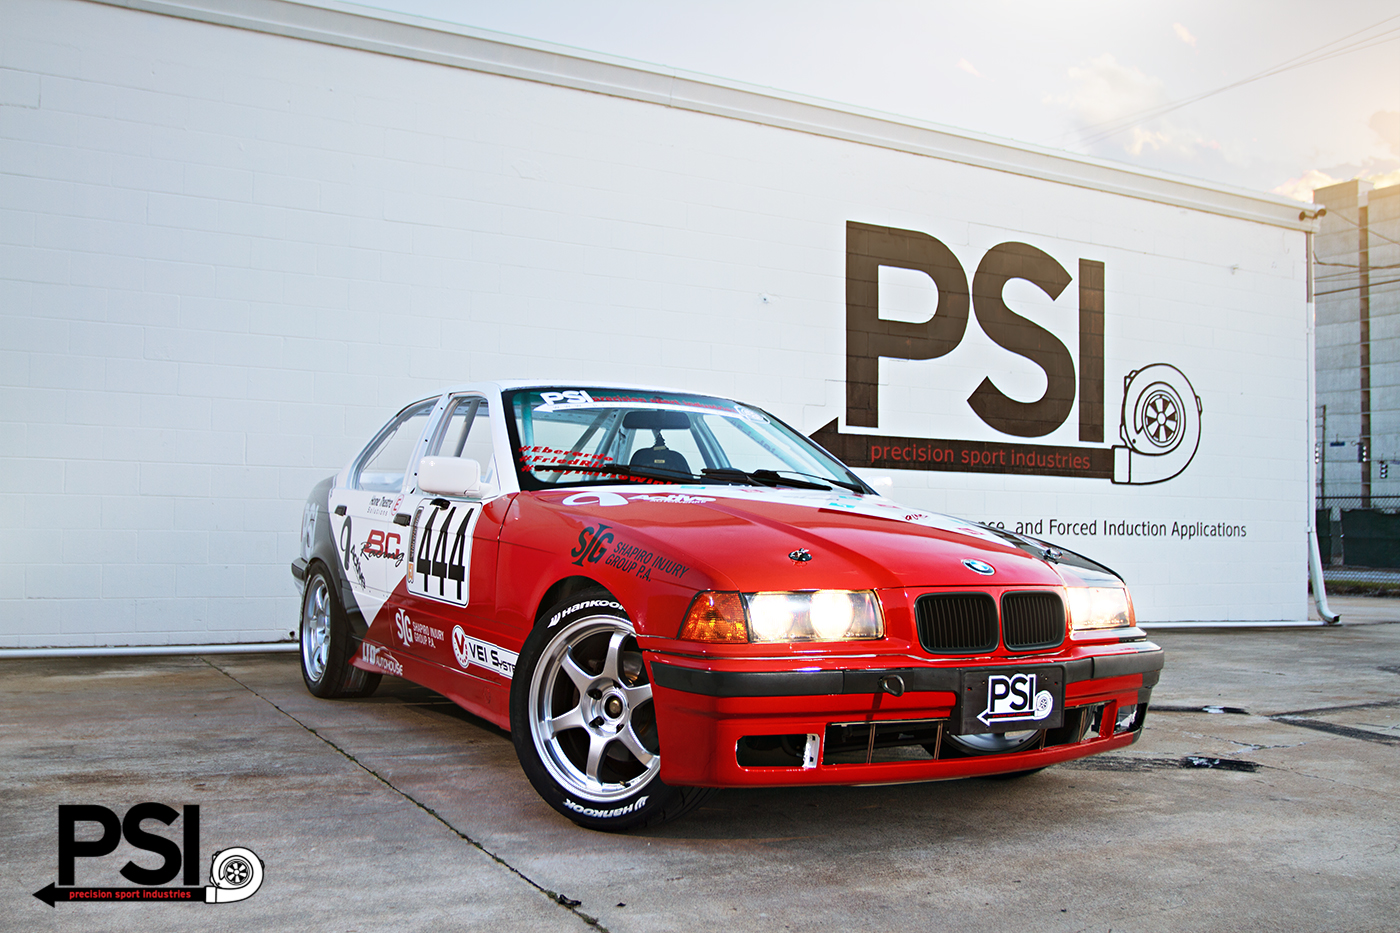 hight resolution of img 2390 as smart object 1 655x436 psi builds an e36 chumpcar img 2390 as smart object 1 655x436 bmw e36 race car wiring